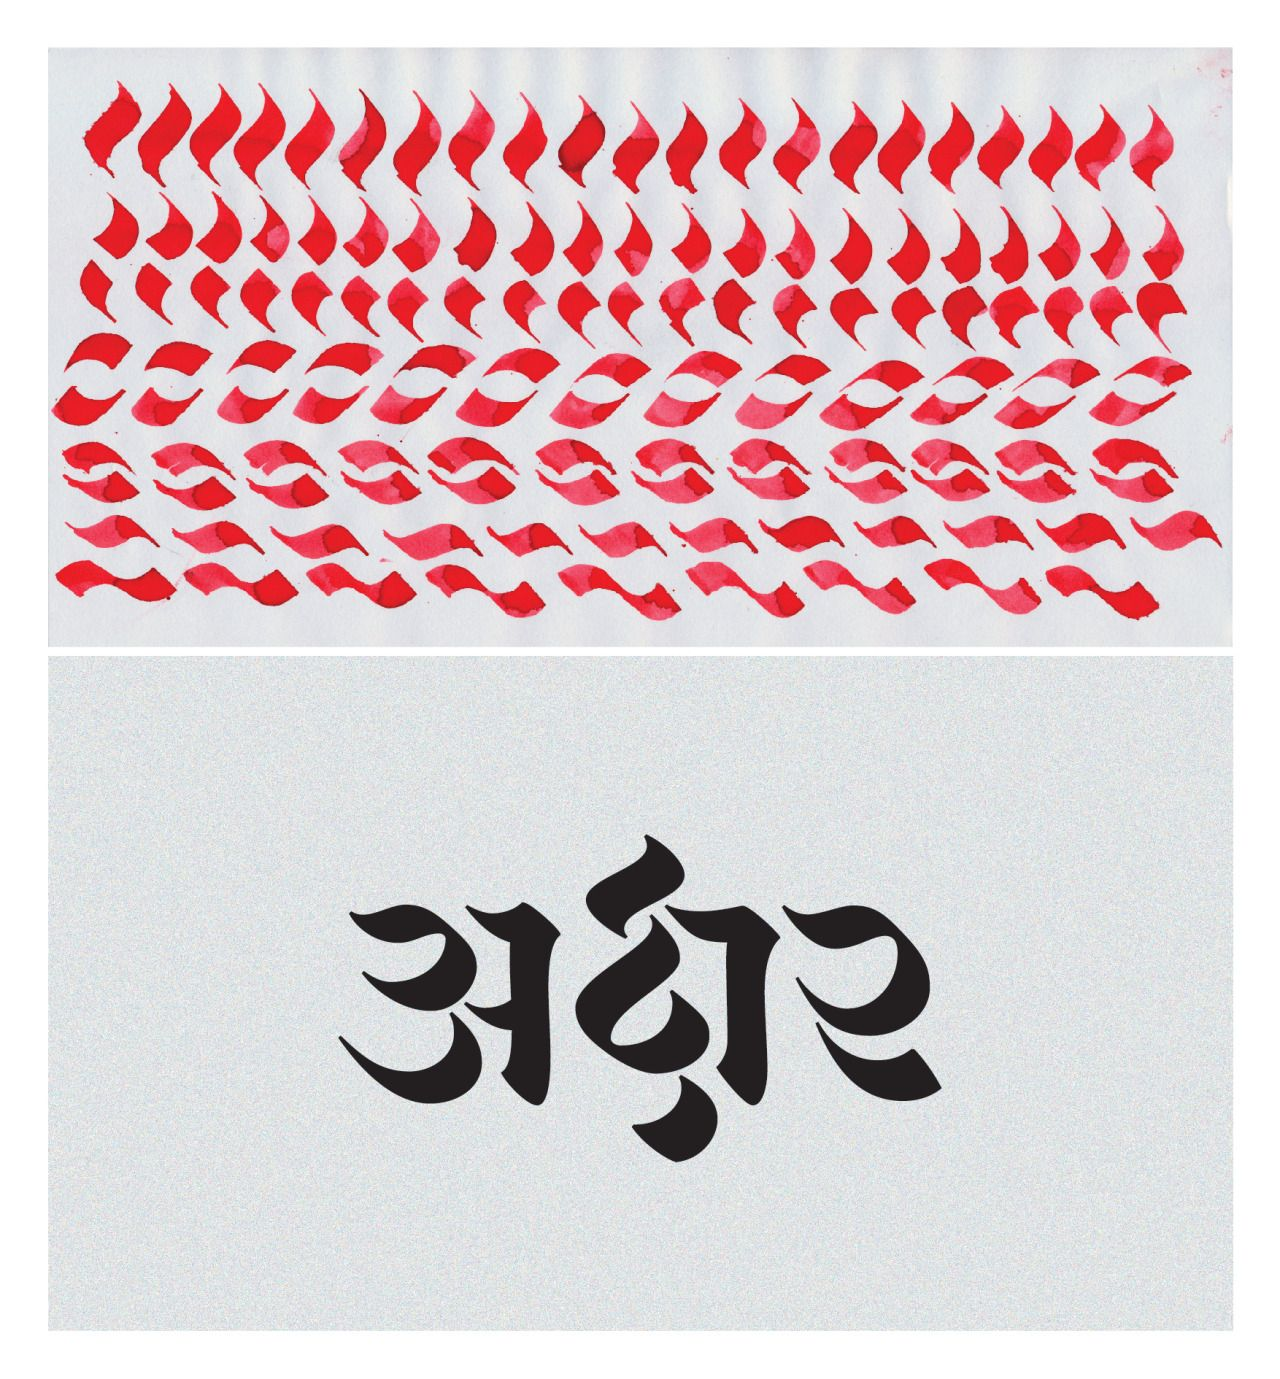 Akshar is conceptualised to be a font constructed from